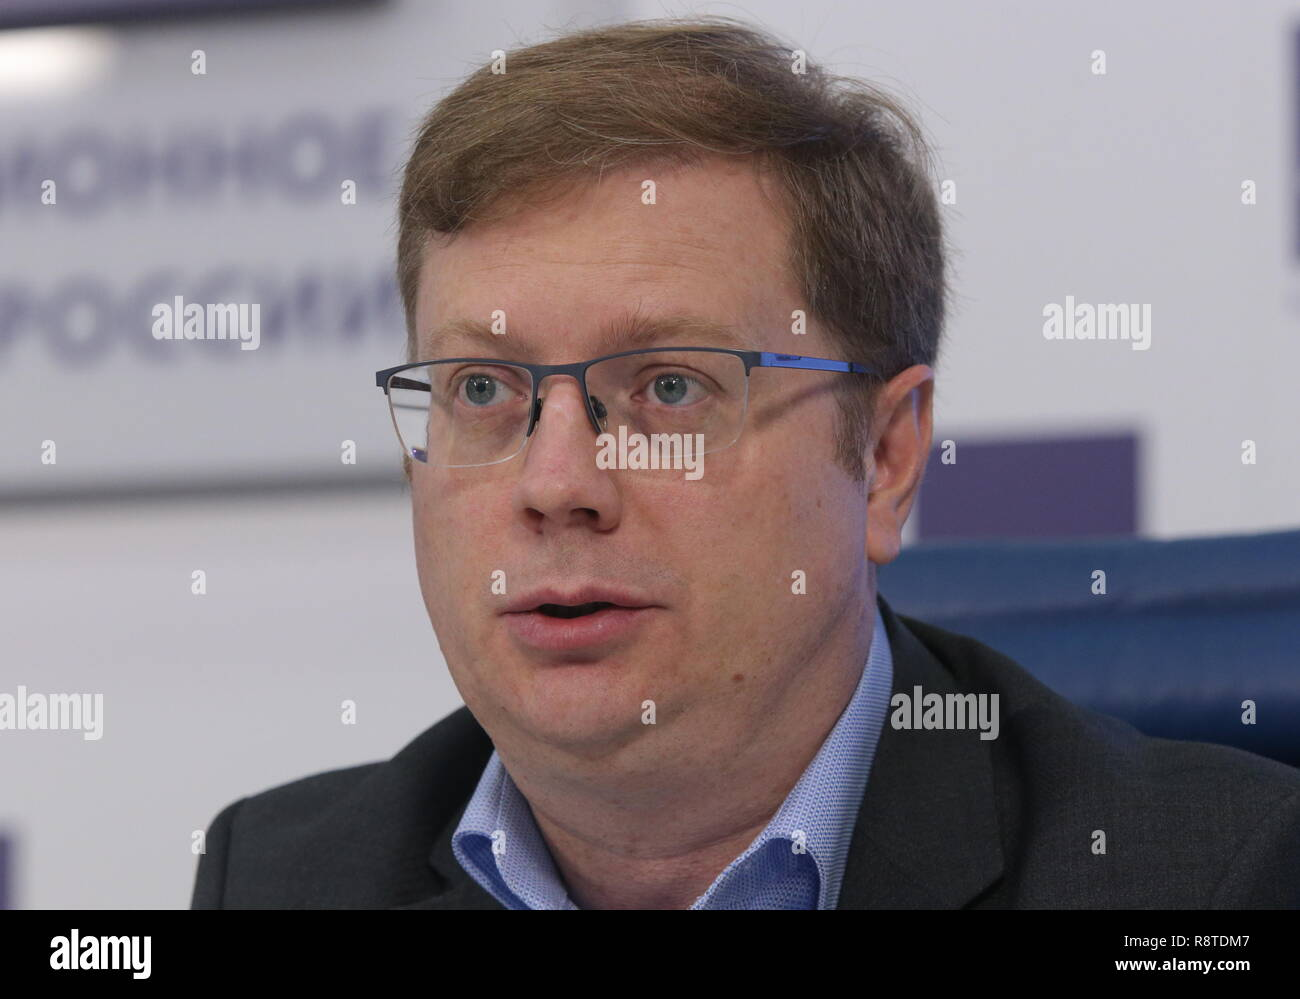 Moscow, Russia. 17th Dec, 2018. MOSCOW, RUSSIA - DECEMBER 17, 2018: The General Director of the LSR Nedvizhimost Moskva real estate development company, Ivan Romanov, at a press conference by Urban Awards organisers at the Moscow office of the TASS news agency to discuss the trends in Moscow's real estate development market in 2018. Vladimir Gerdo/TASS Credit: ITAR-TASS News Agency/Alamy Live News - Stock Image